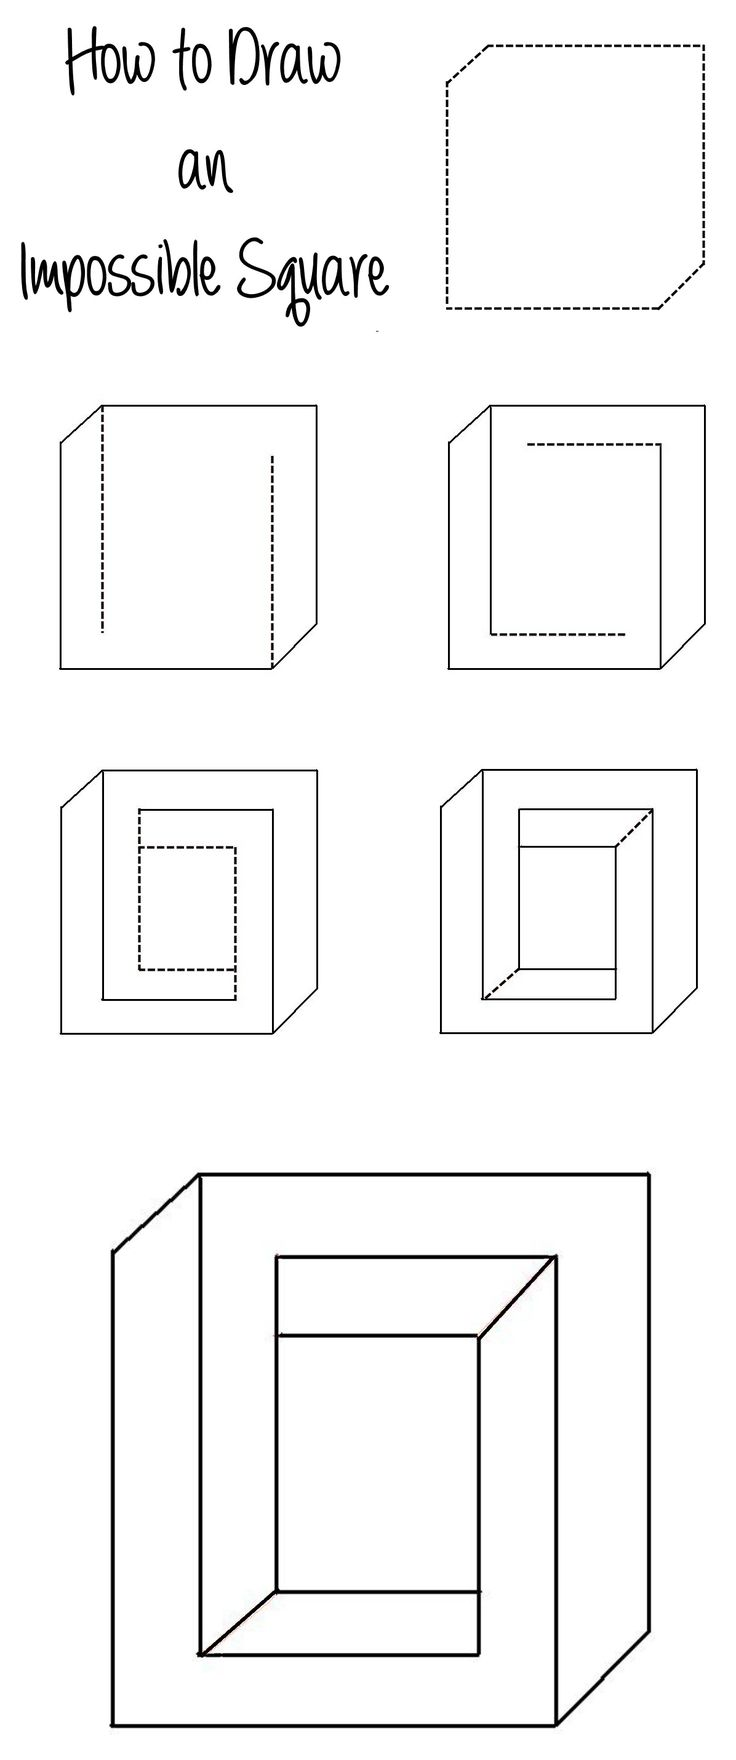 Impossible square